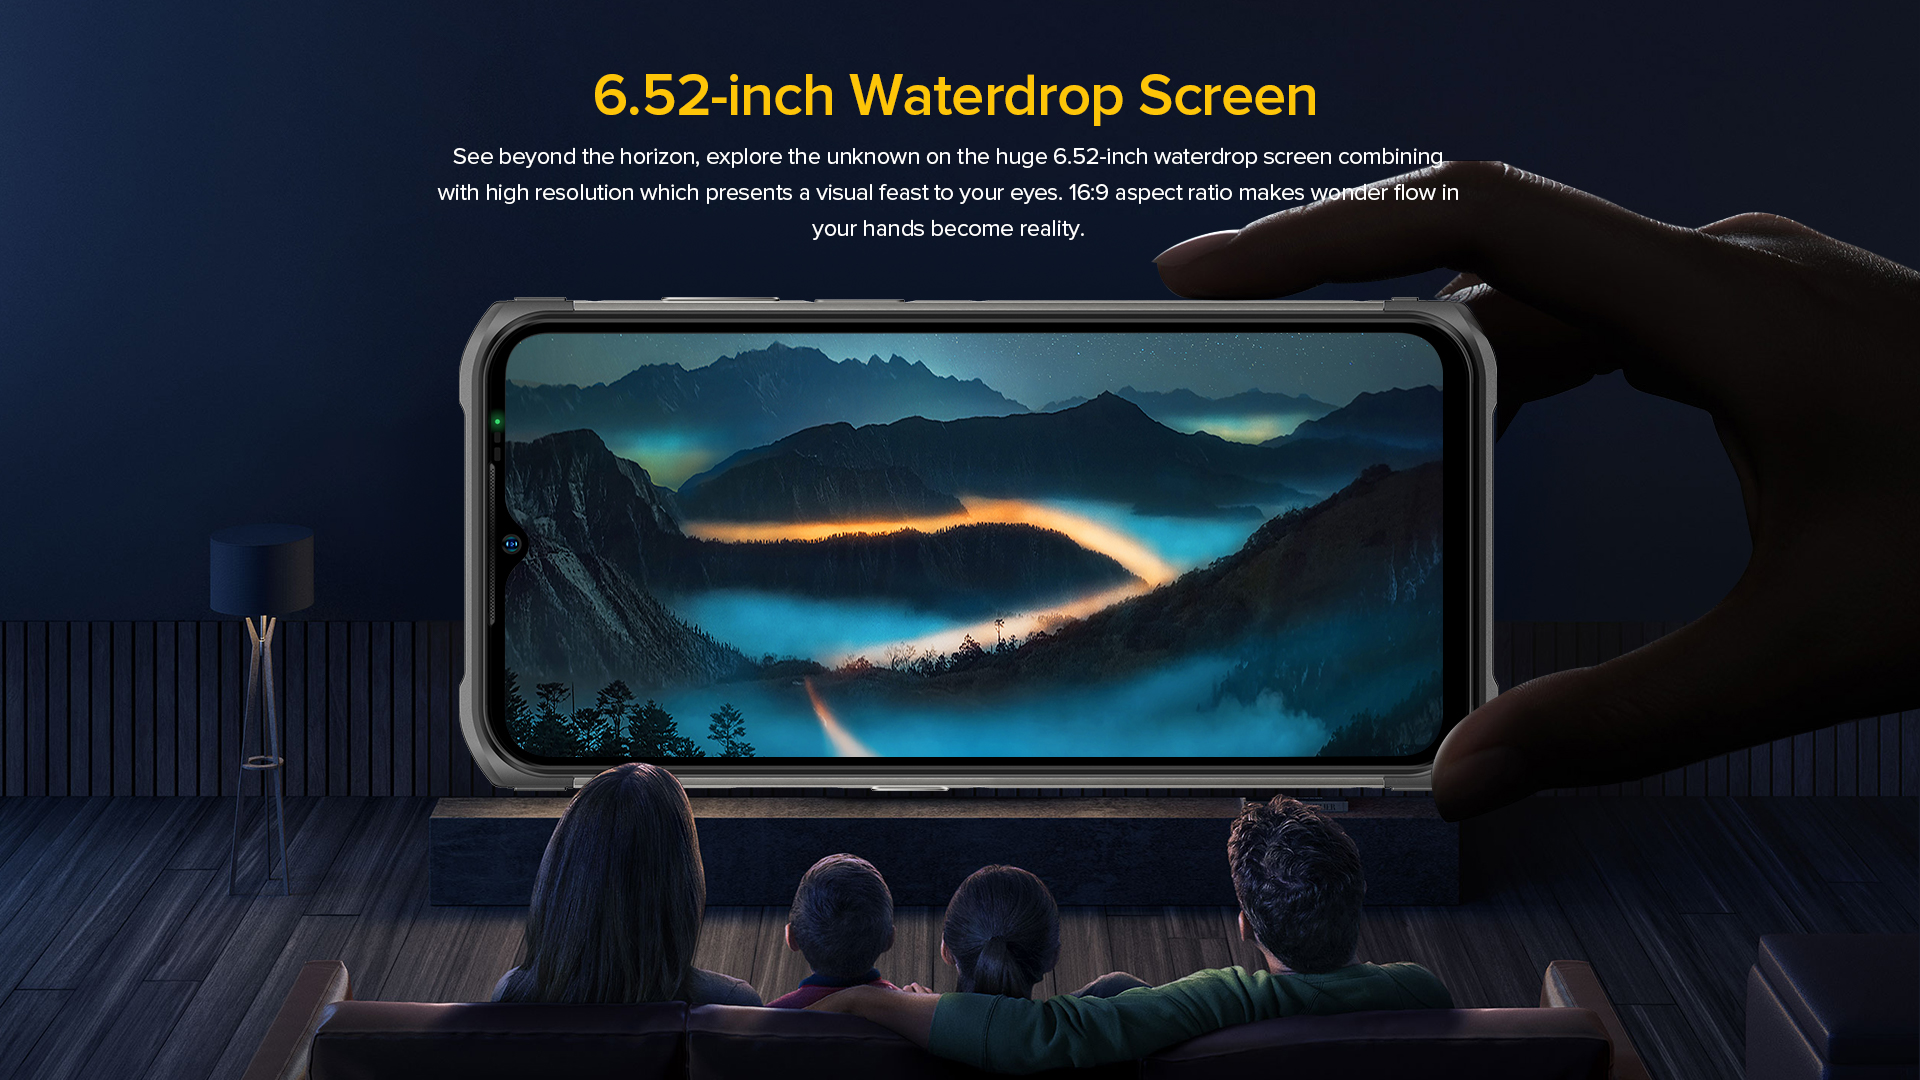 large capacitive touchscreen viewing